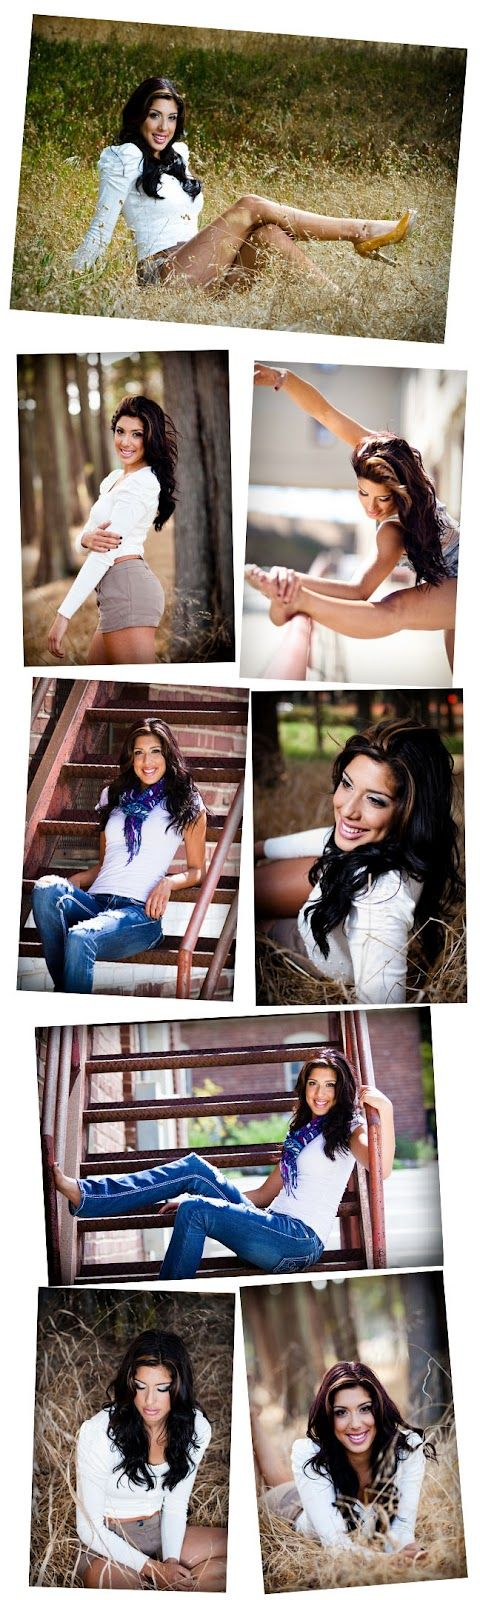 Still Light Studios: Senior Portraits Gallery - I like the stretching poses